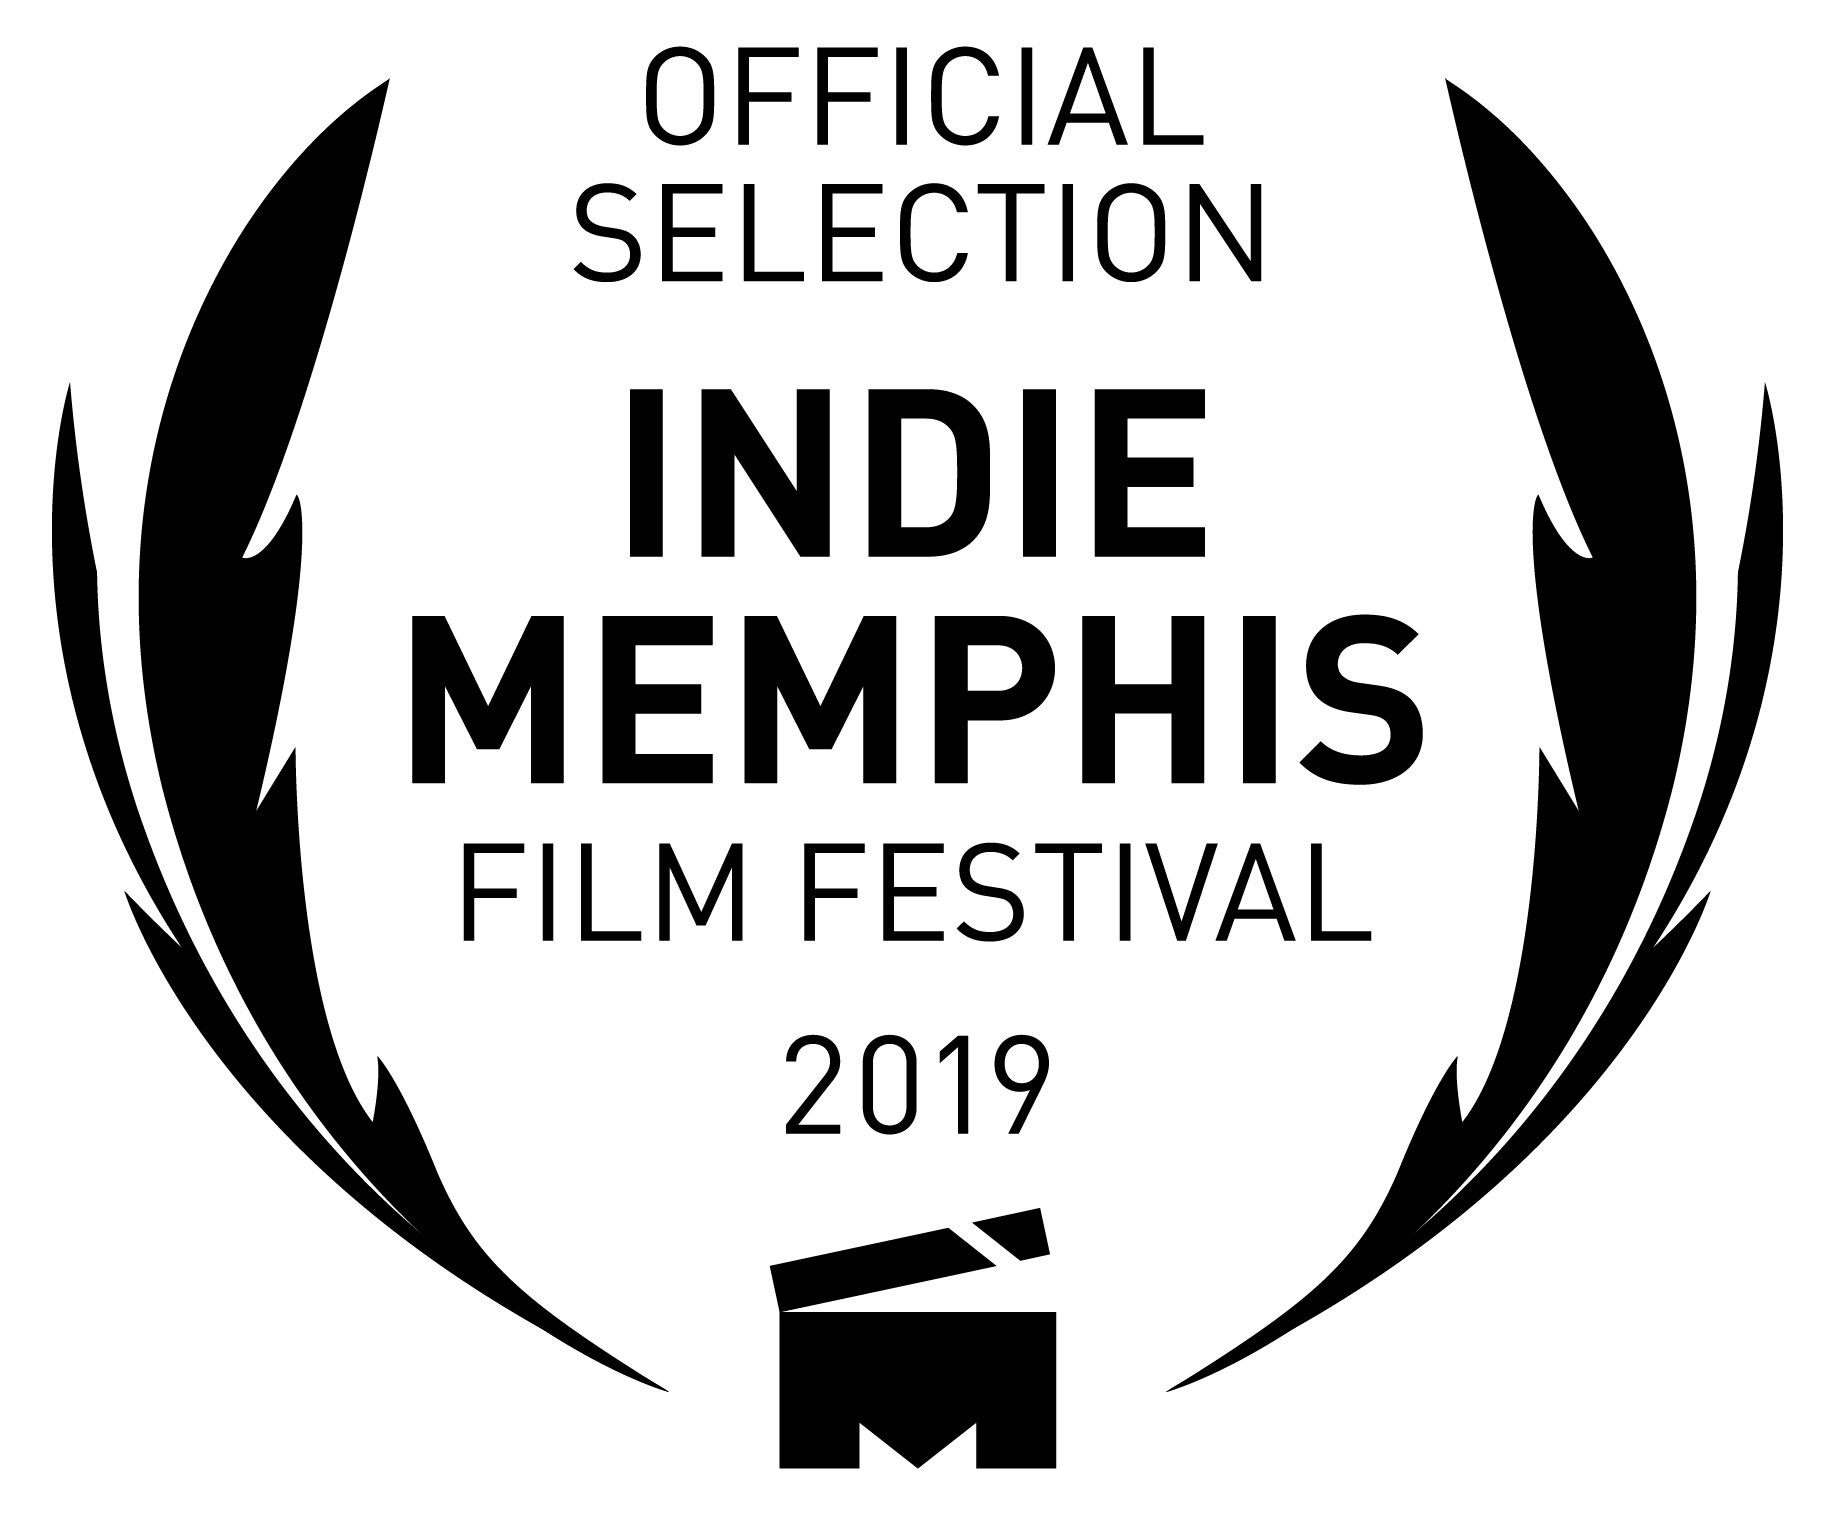 IM-FilmFest-OfficialSelection.jpg